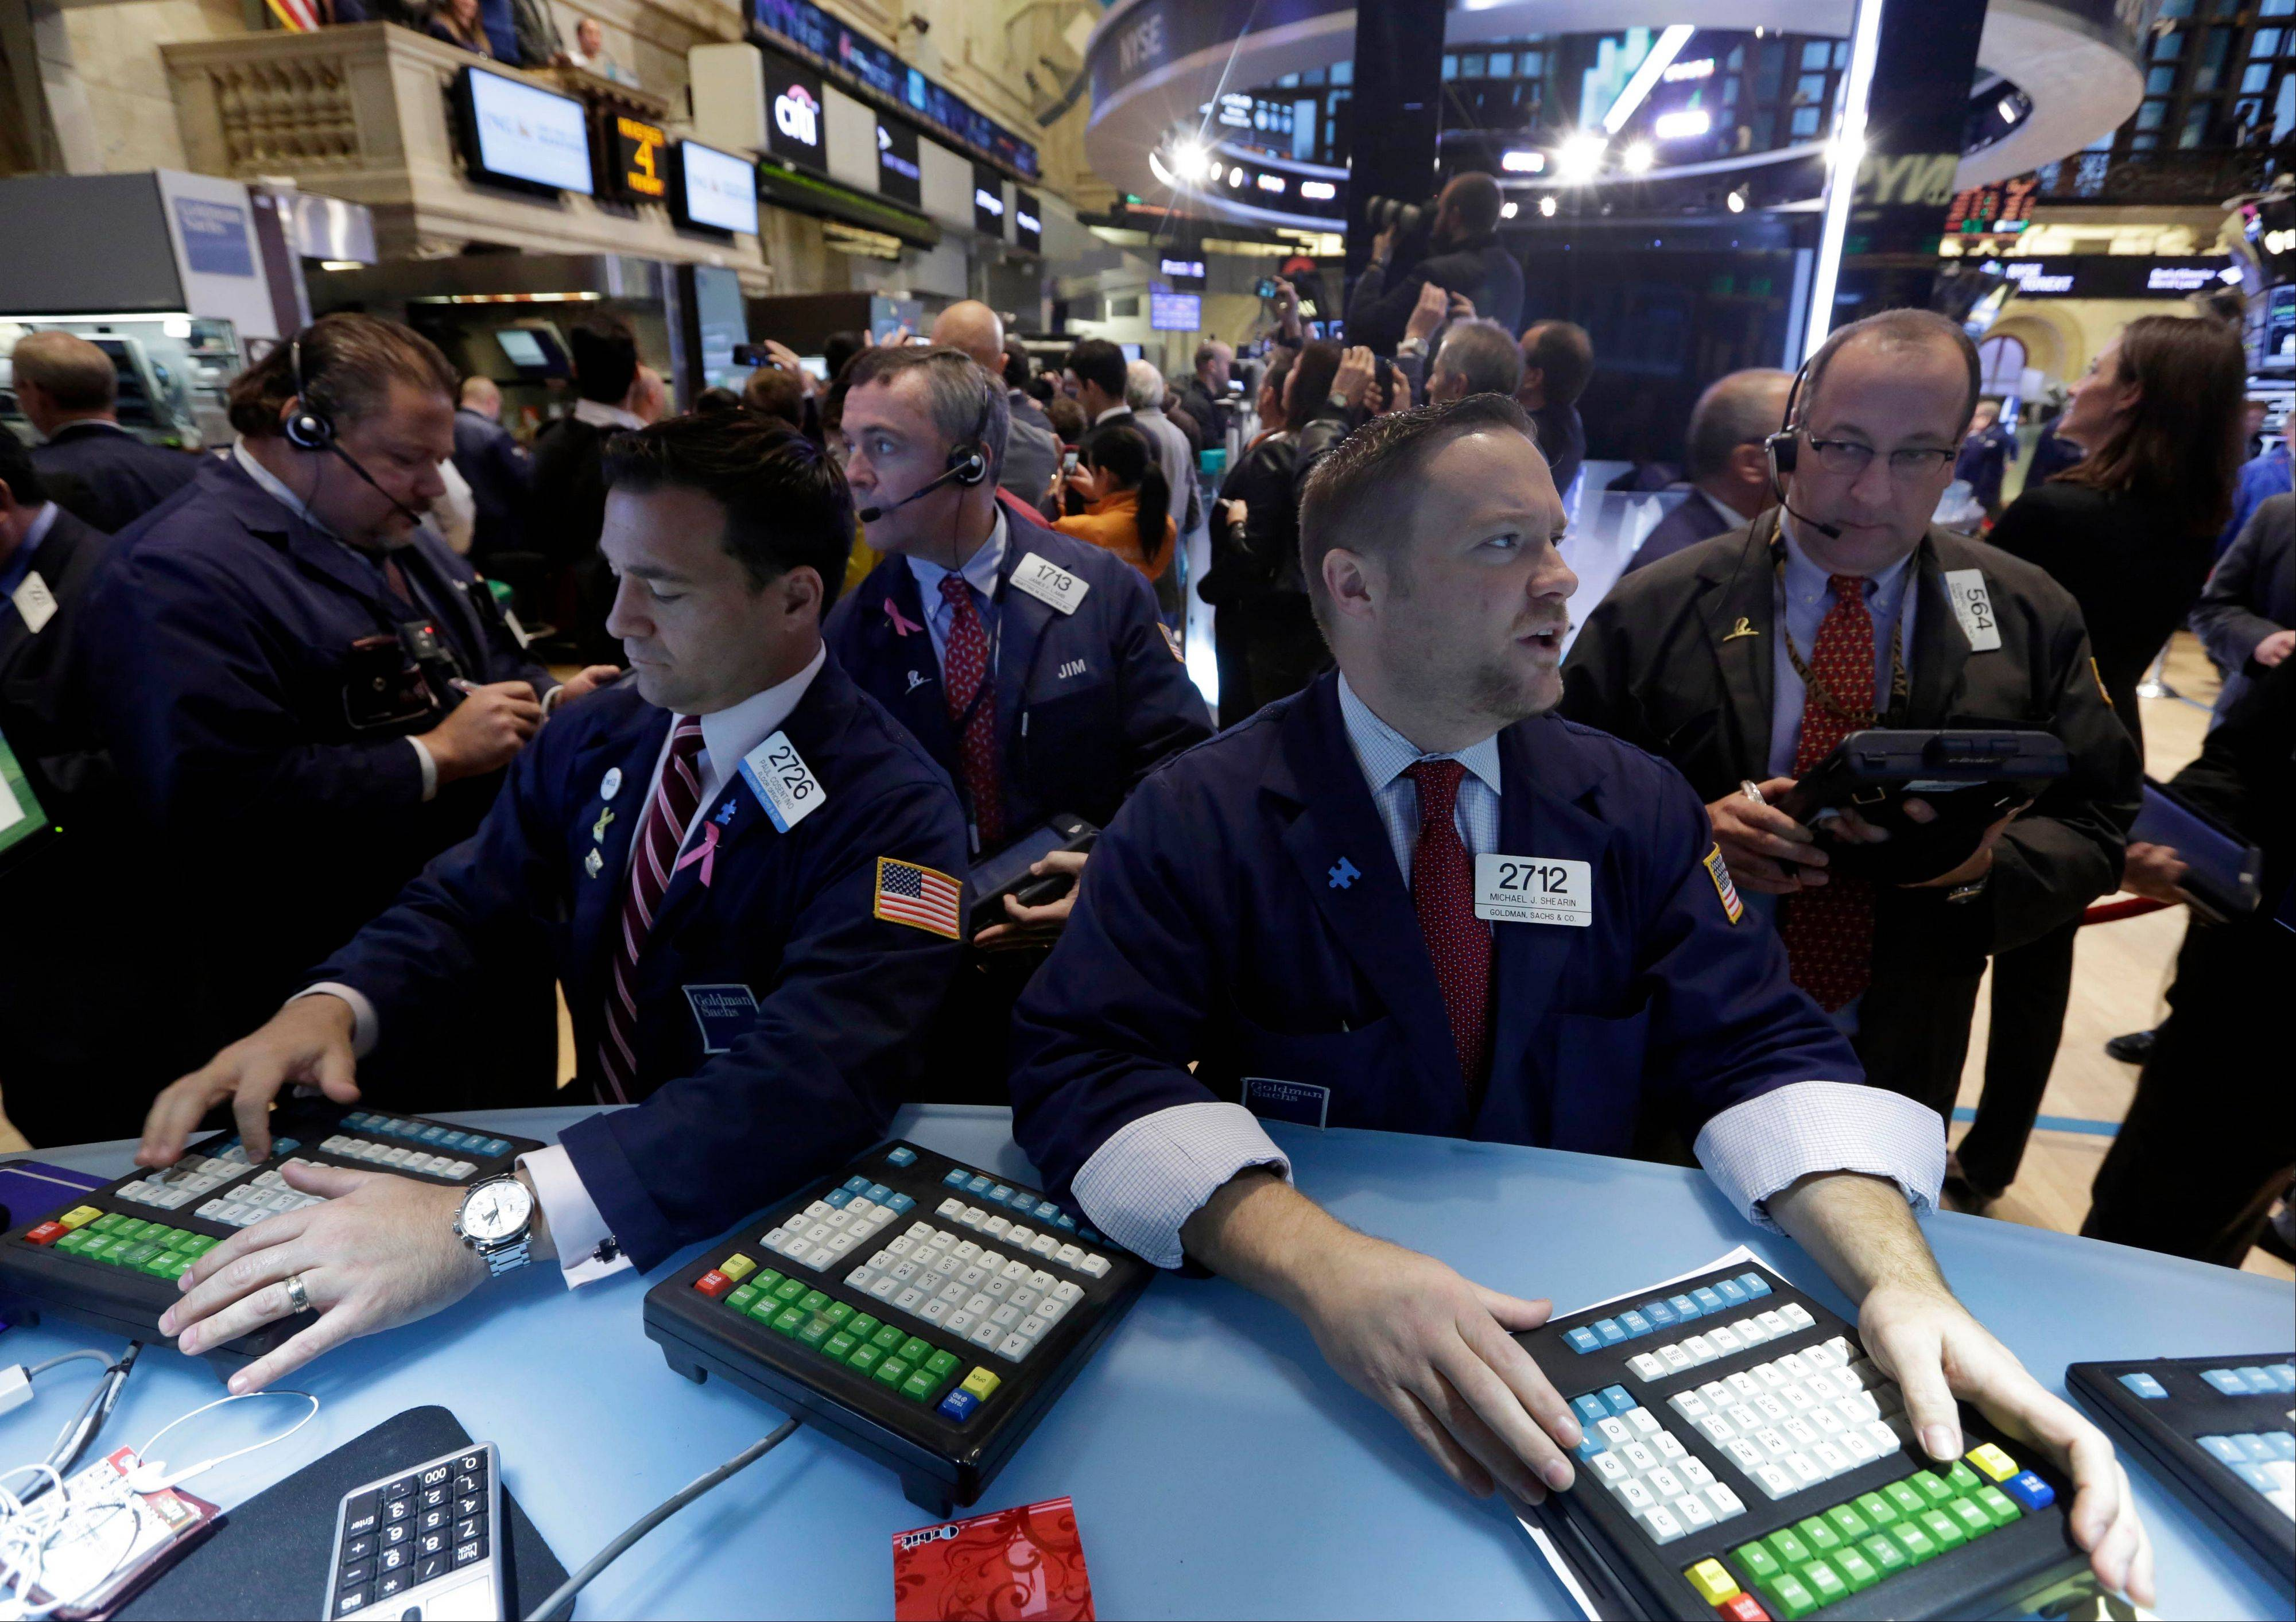 U.S. stocks declined, following two days of gains that sent the Standard & Poor�s 500 Index to within five points of a record high, as investors awaited this week�s data on economic growth and employment.